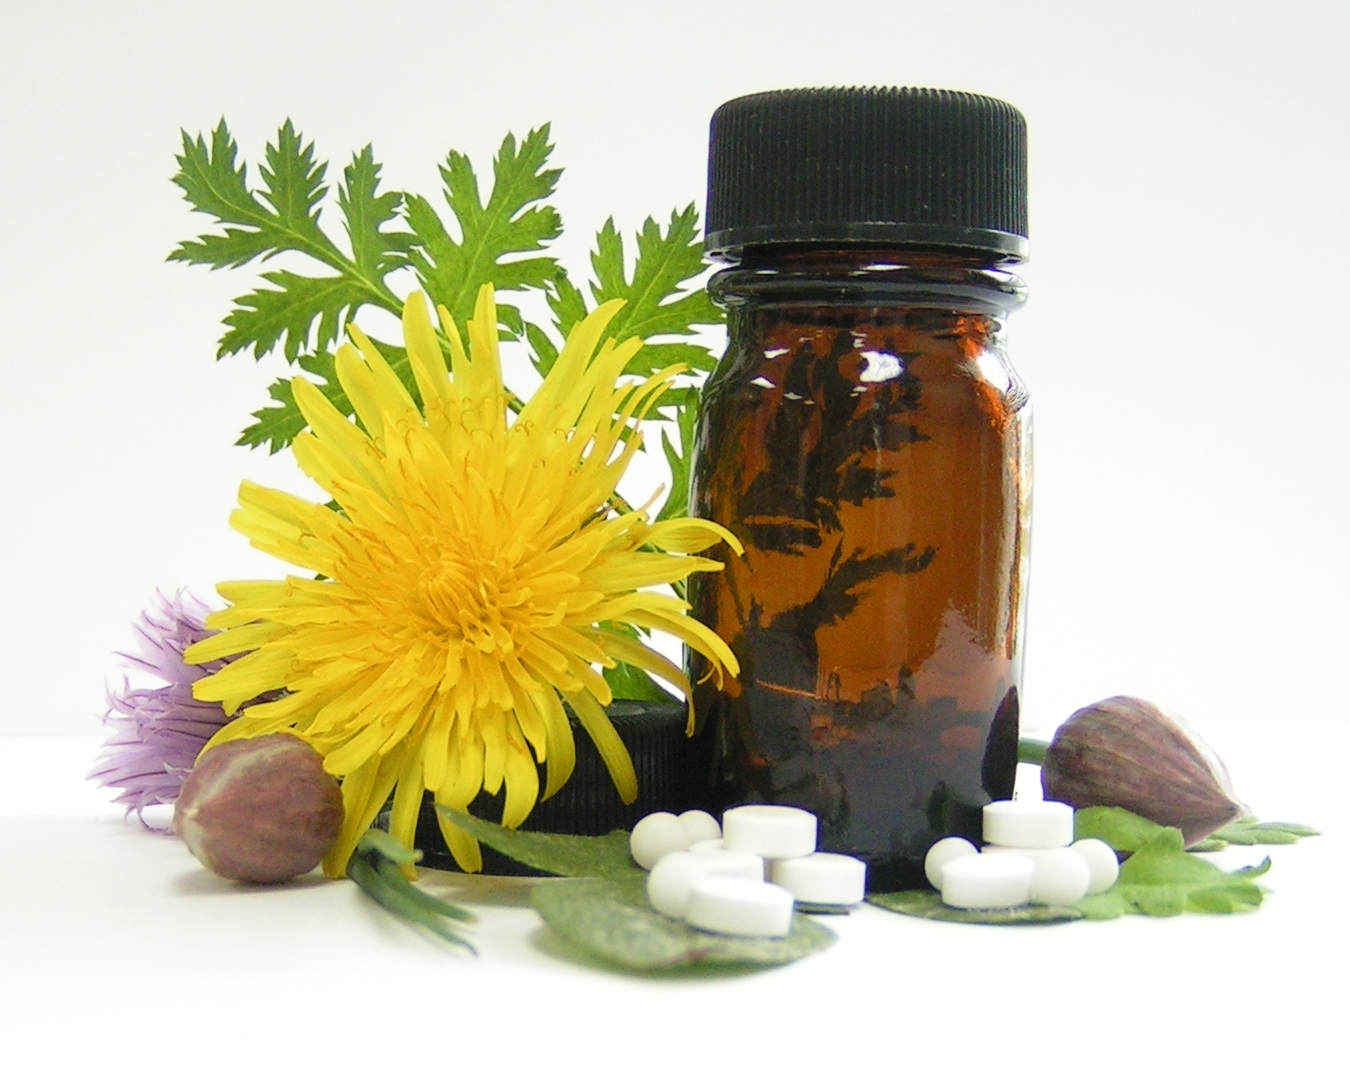 When you think about it…if alternative medicine helps us ...